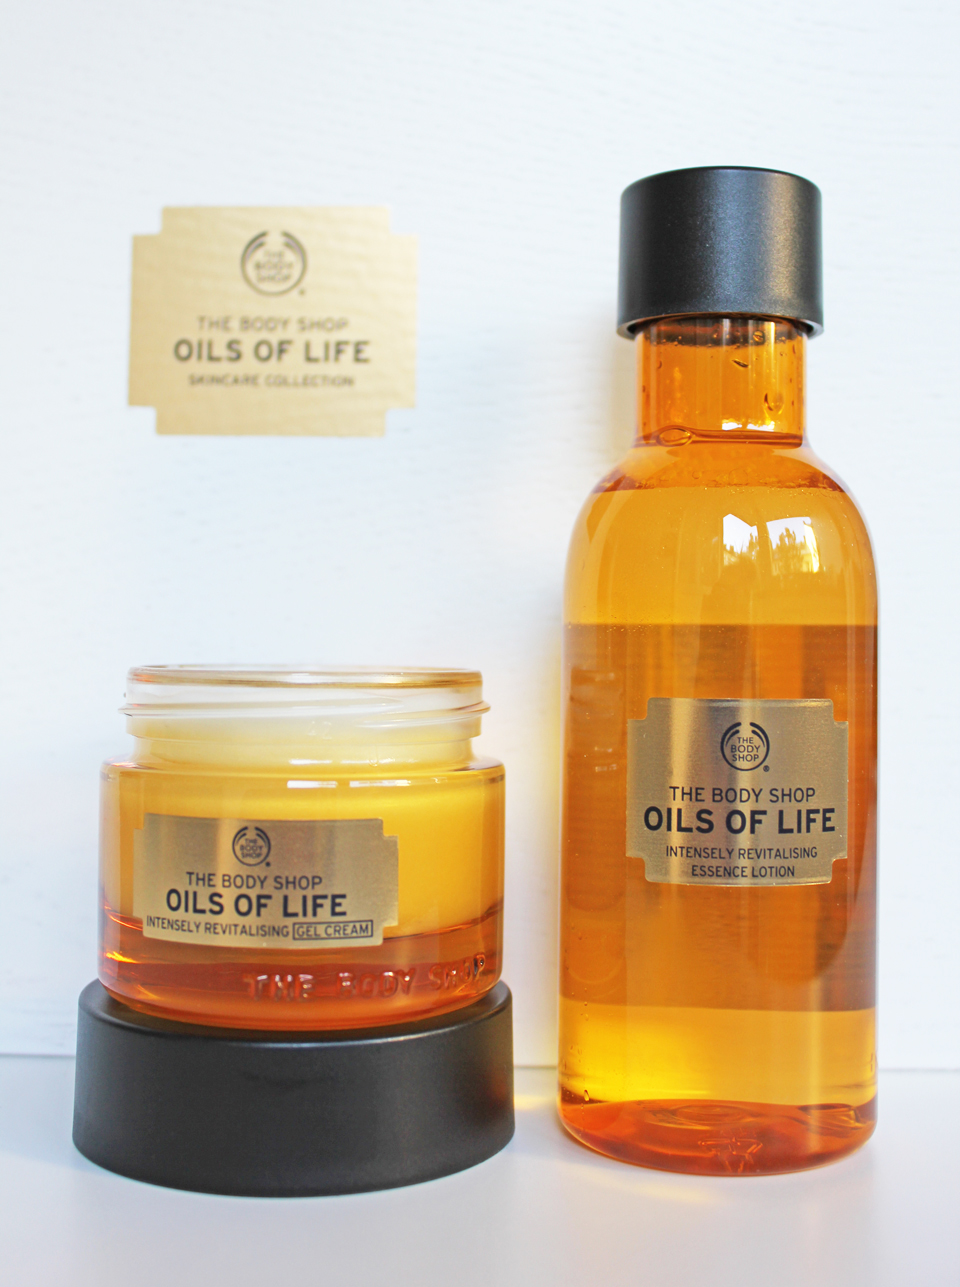 The Body Shop Oils of Life 2